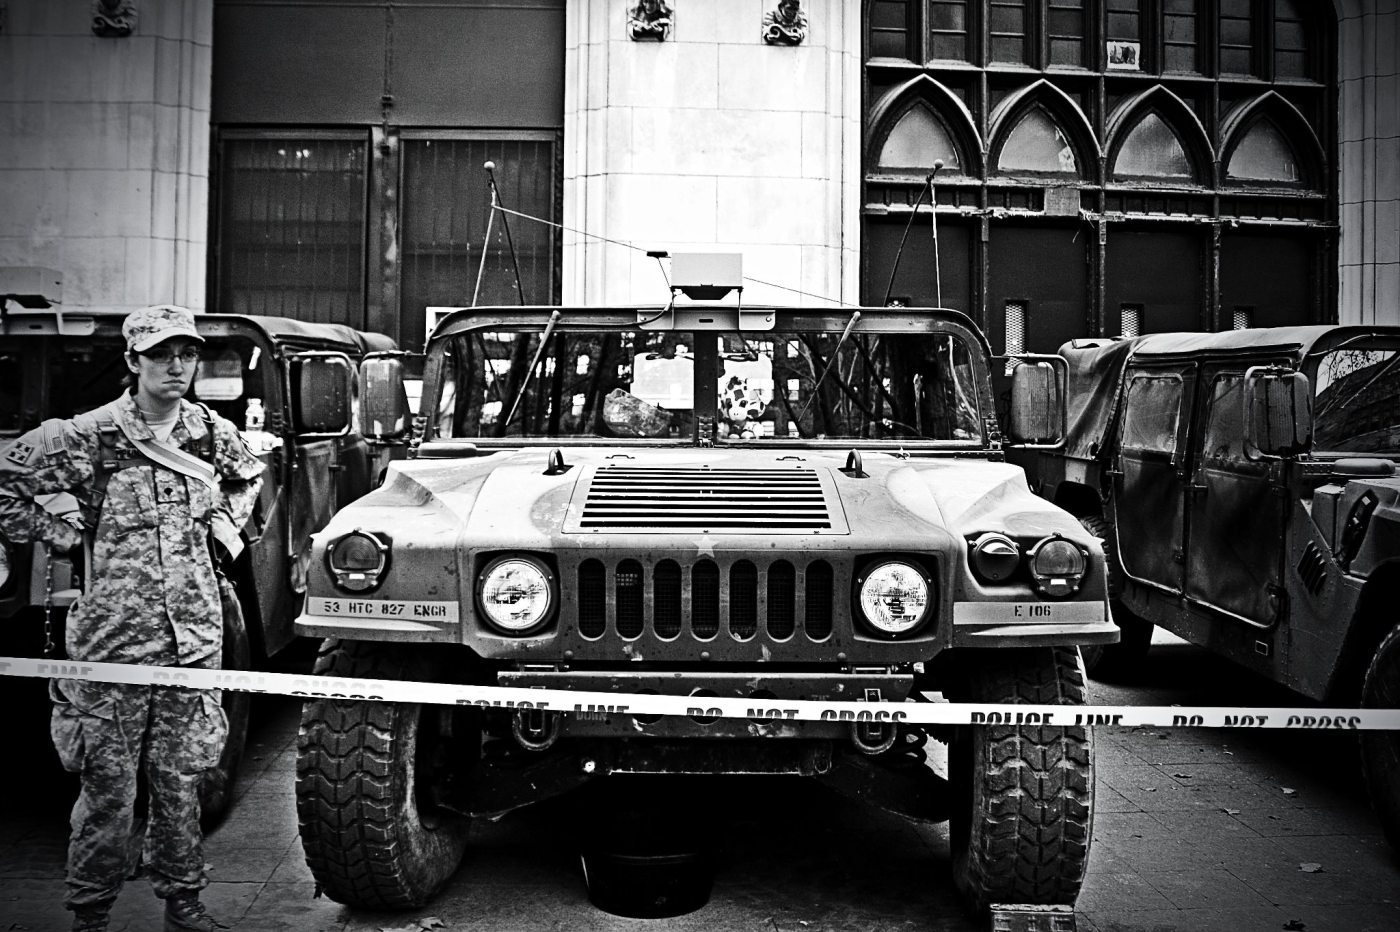 November 2nd, 2012: The National Guard stationed in Chinatown, NYC, where they were giving out food and water to residents in the area.